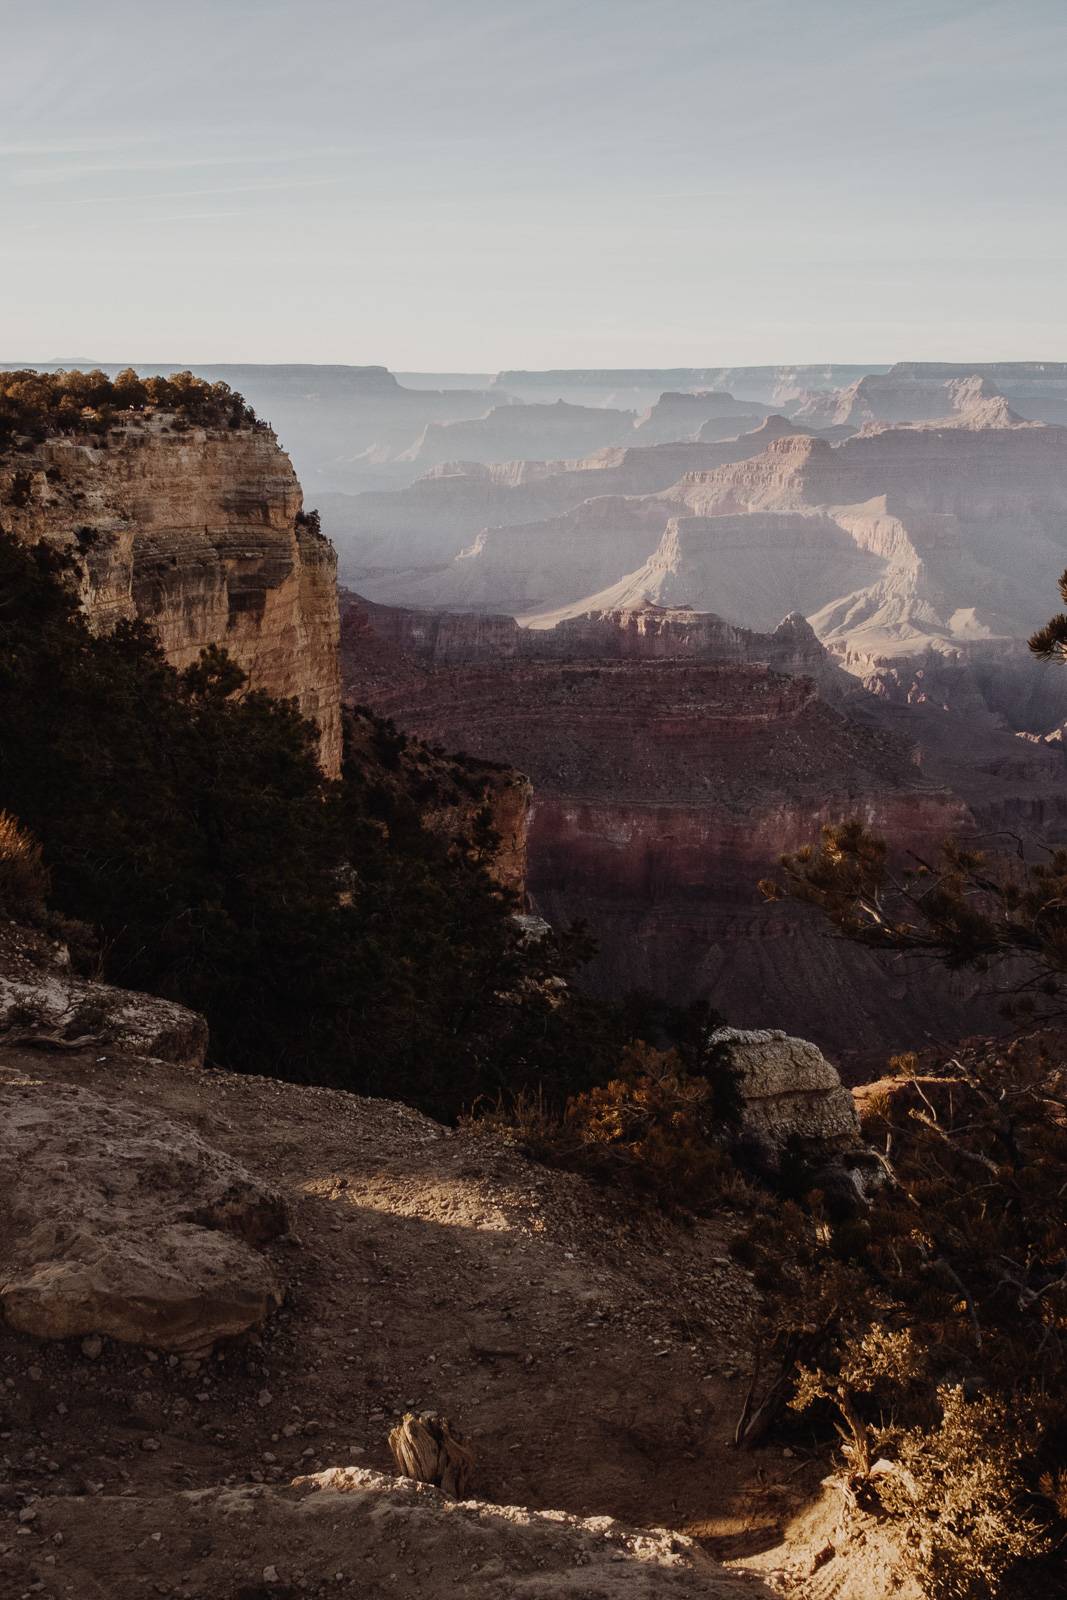 Wolf & Stag Adventures: Vegas & The Grand Canyon | Images of the grand canyon at sunset | Wolf & Stag